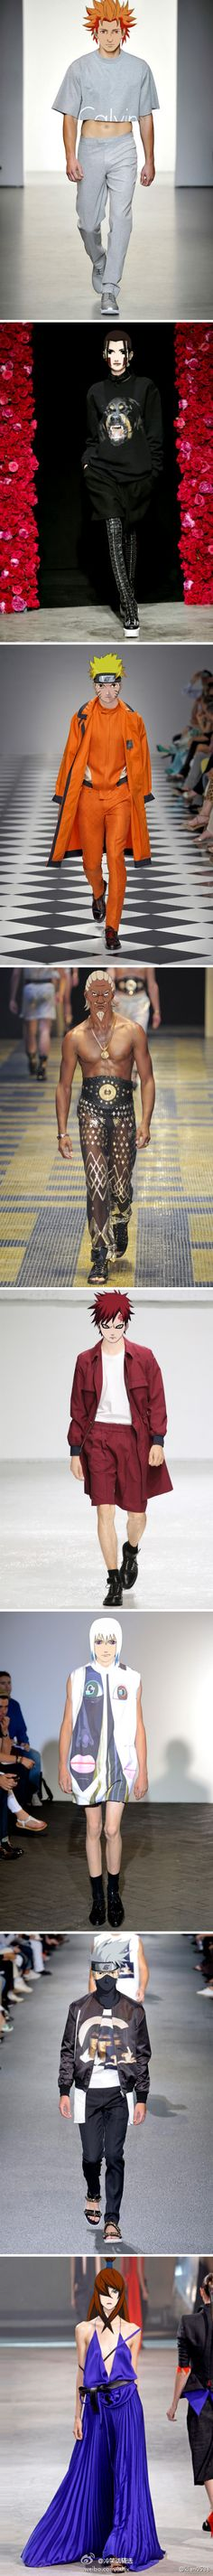 What a hoot. Looks at the Raikage. But Gaara is also the killer. #ROFL